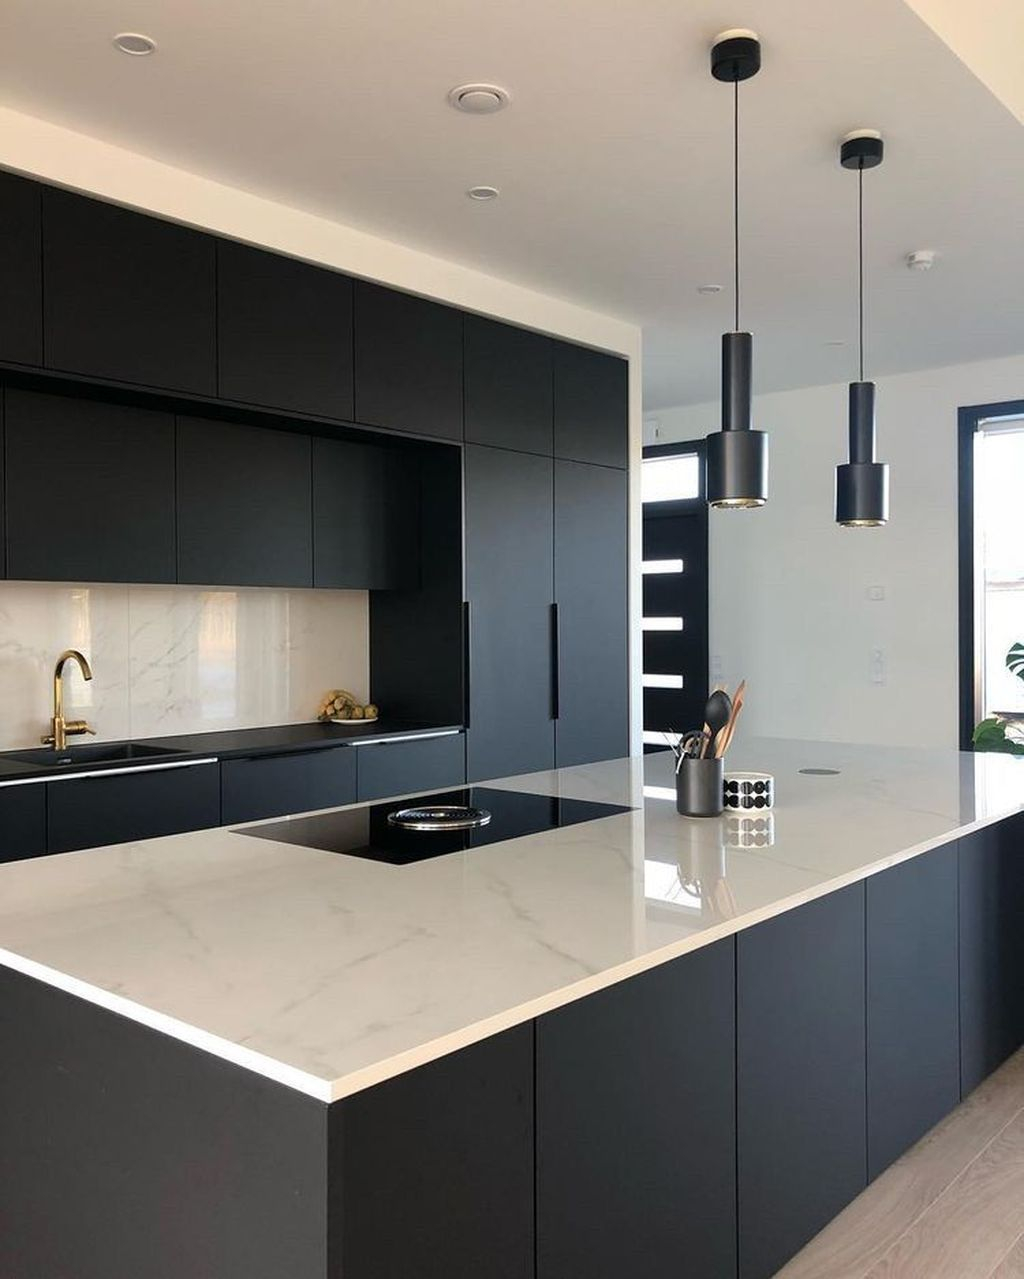 Elegant Minimalist Kitchen Design Ideas For Small Space To Try 25